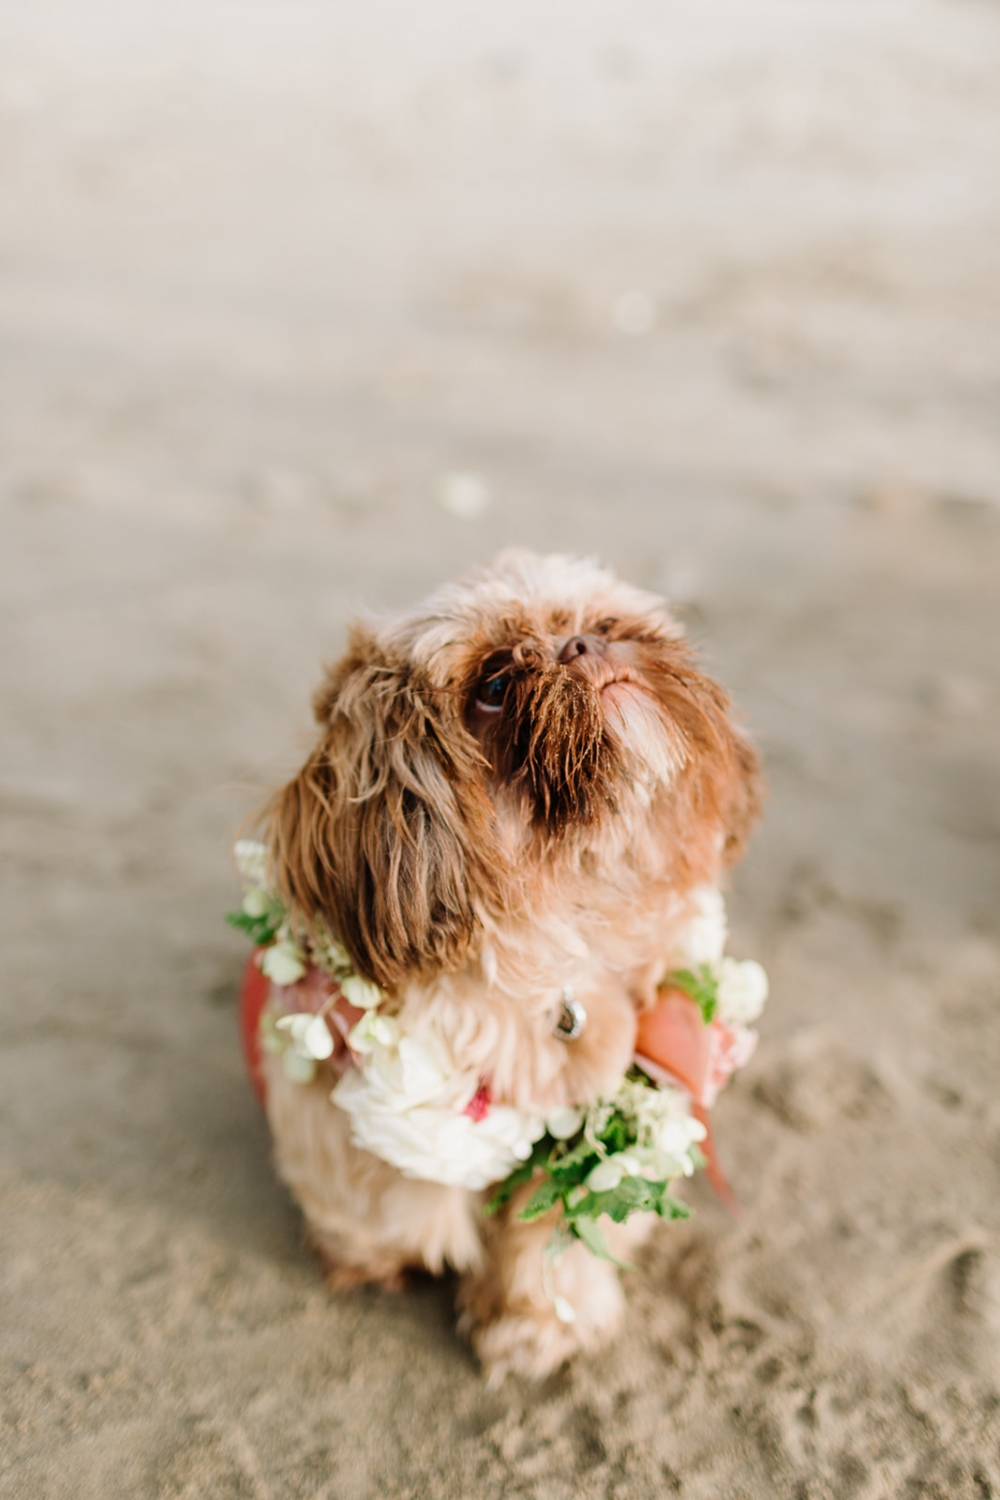 cute dog of honor with a floral collar